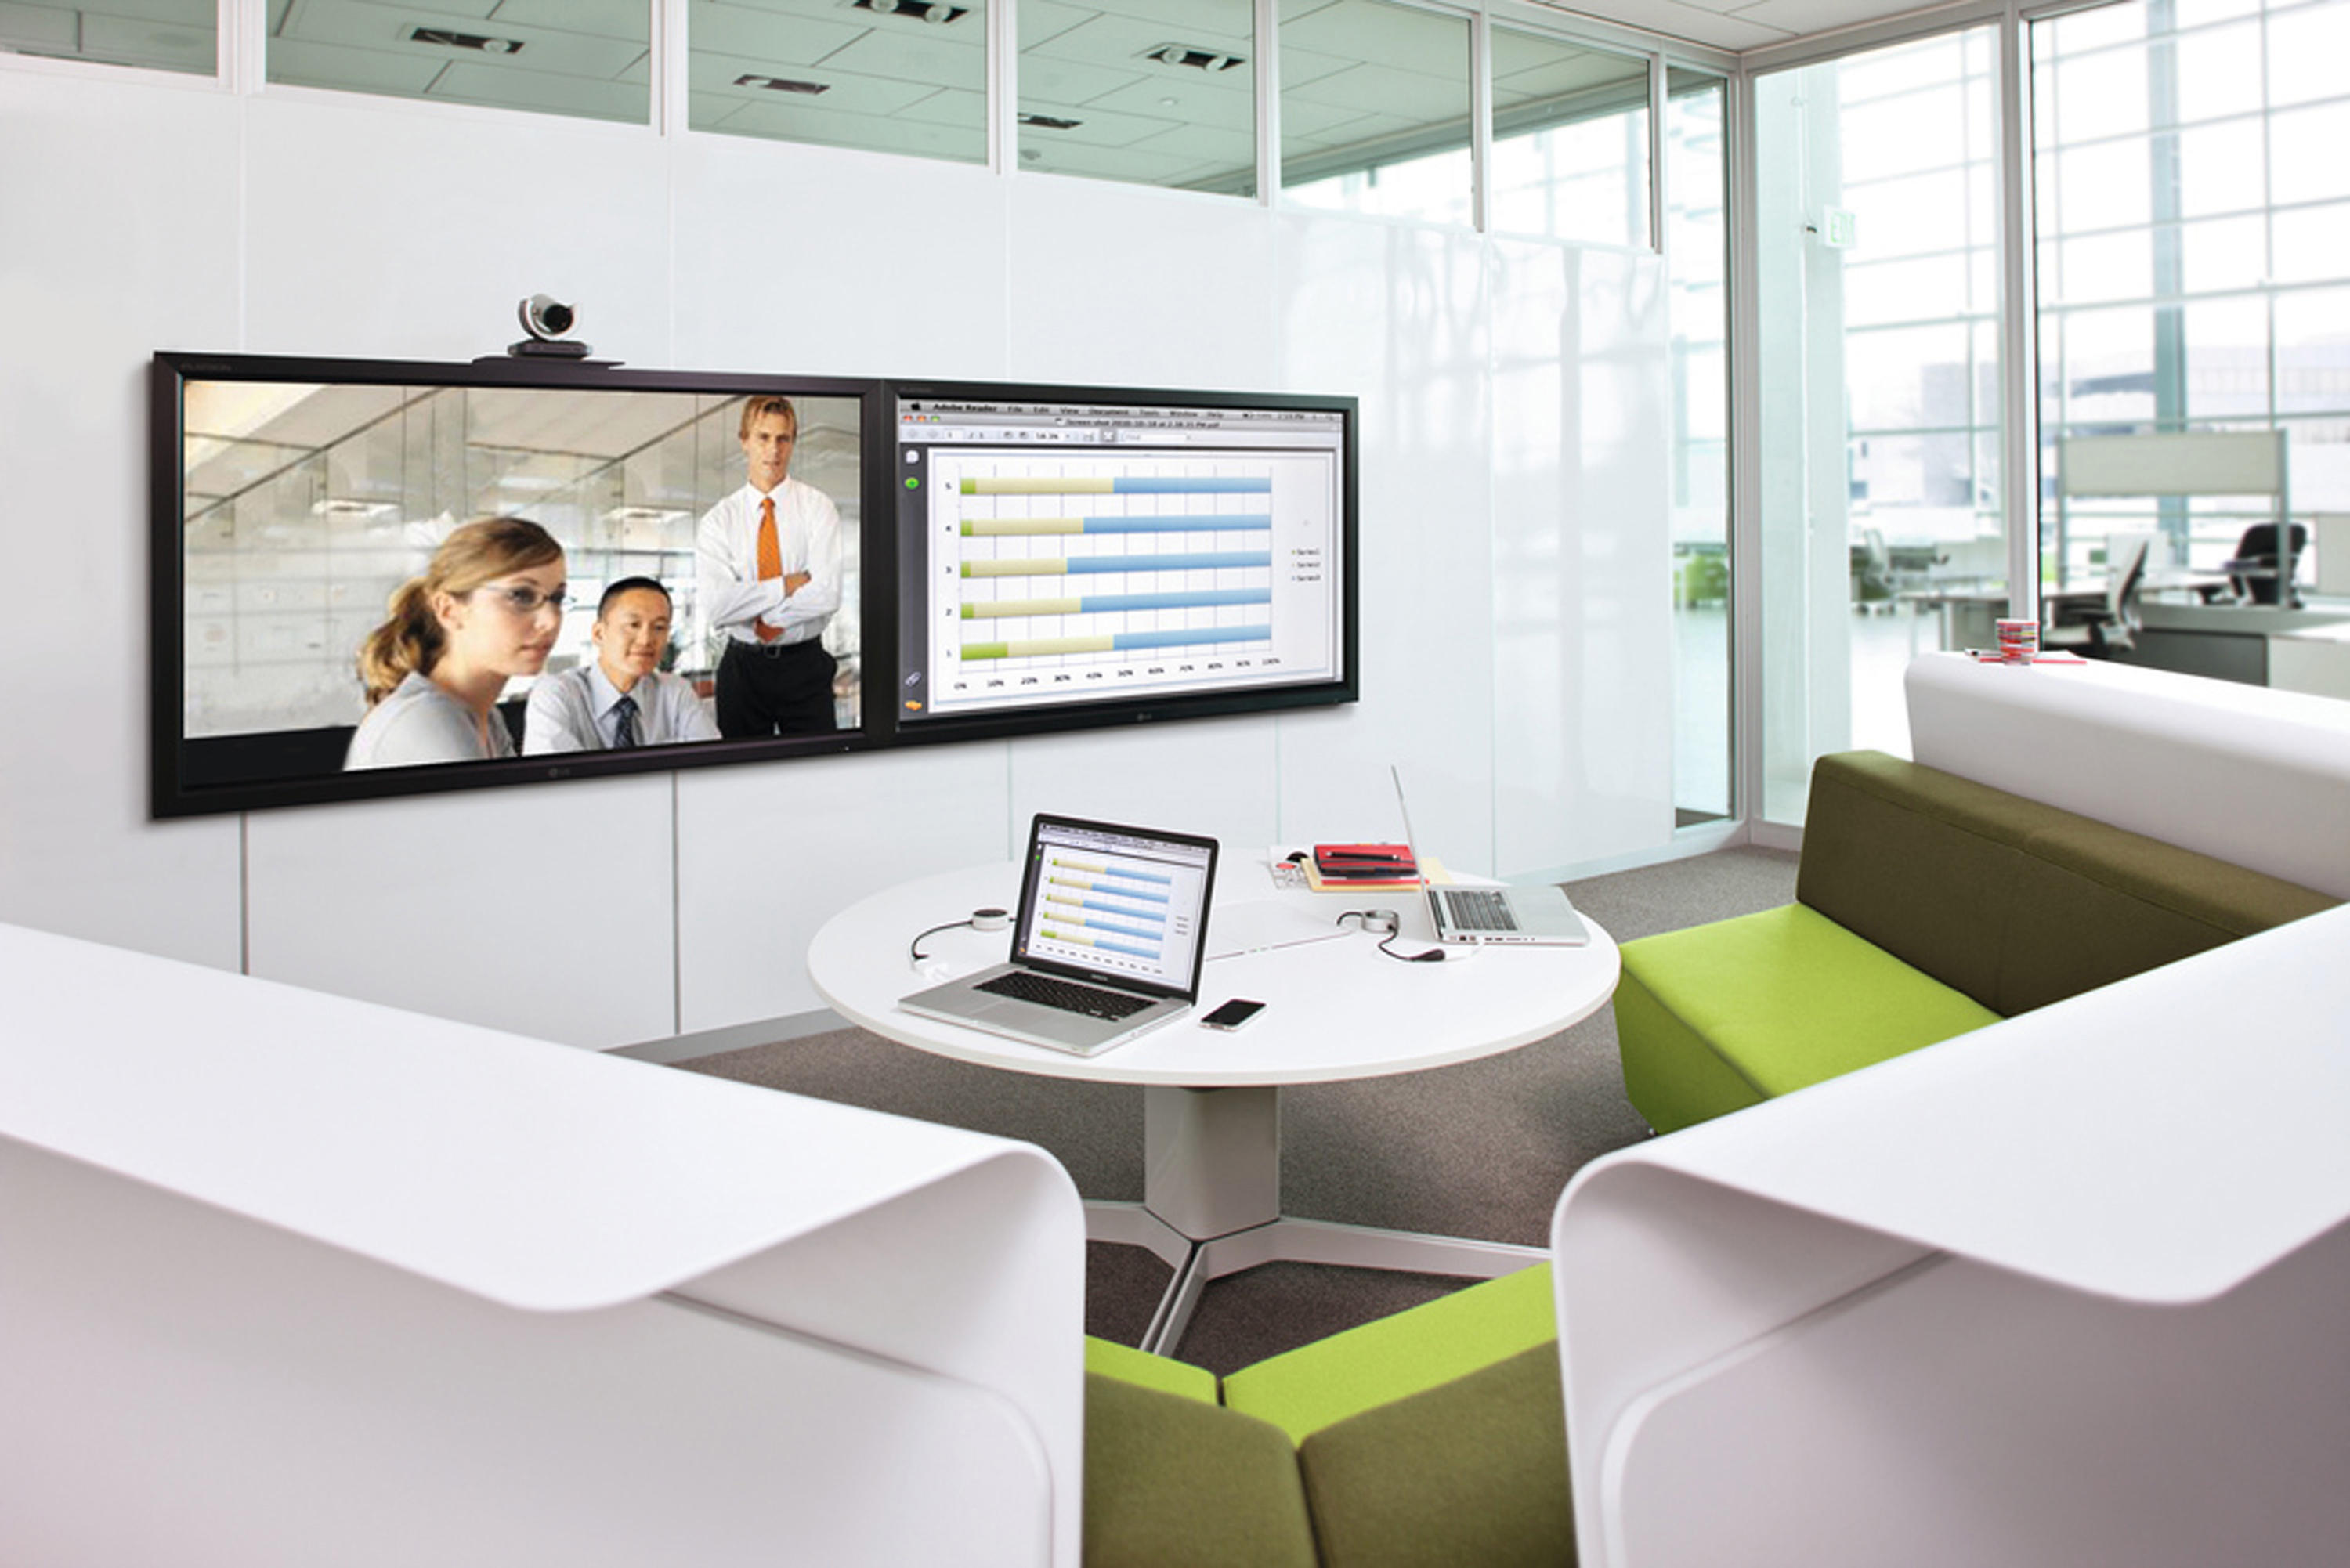 mediascape  av wall unites from steelcase  architonic -  mediascape by steelcase